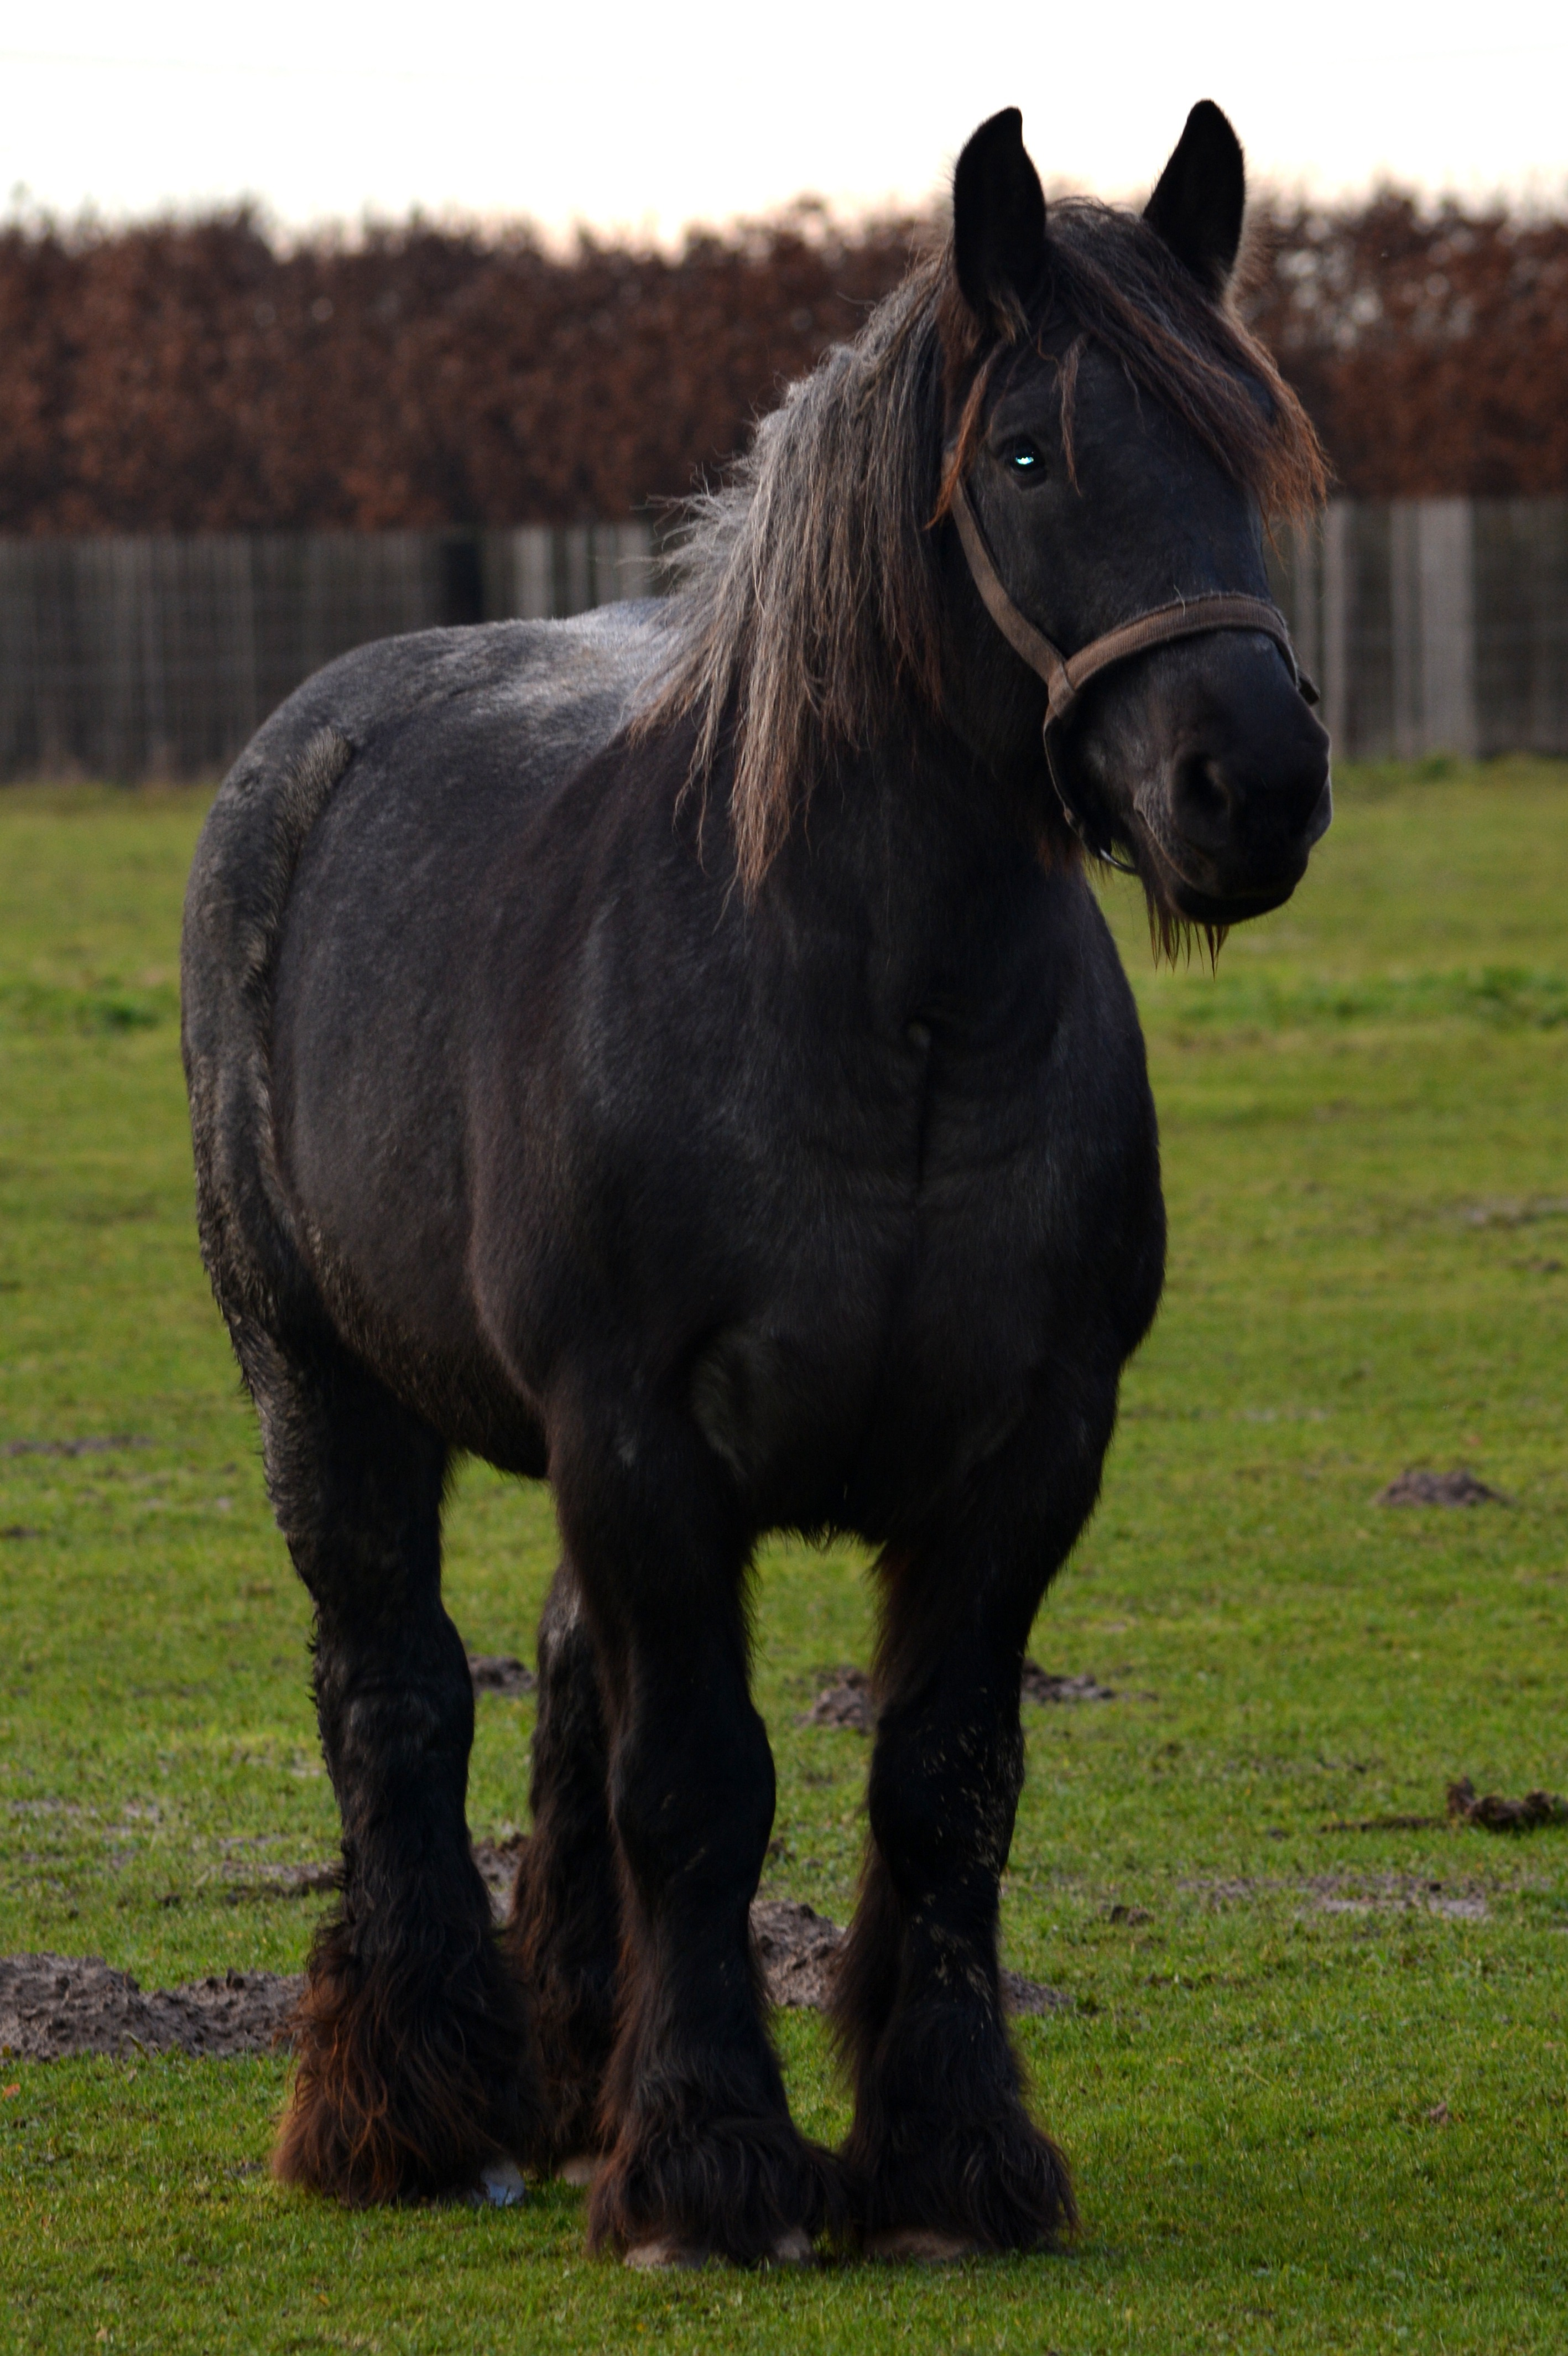 Black Draft Horse On A Green Meadow Free Image